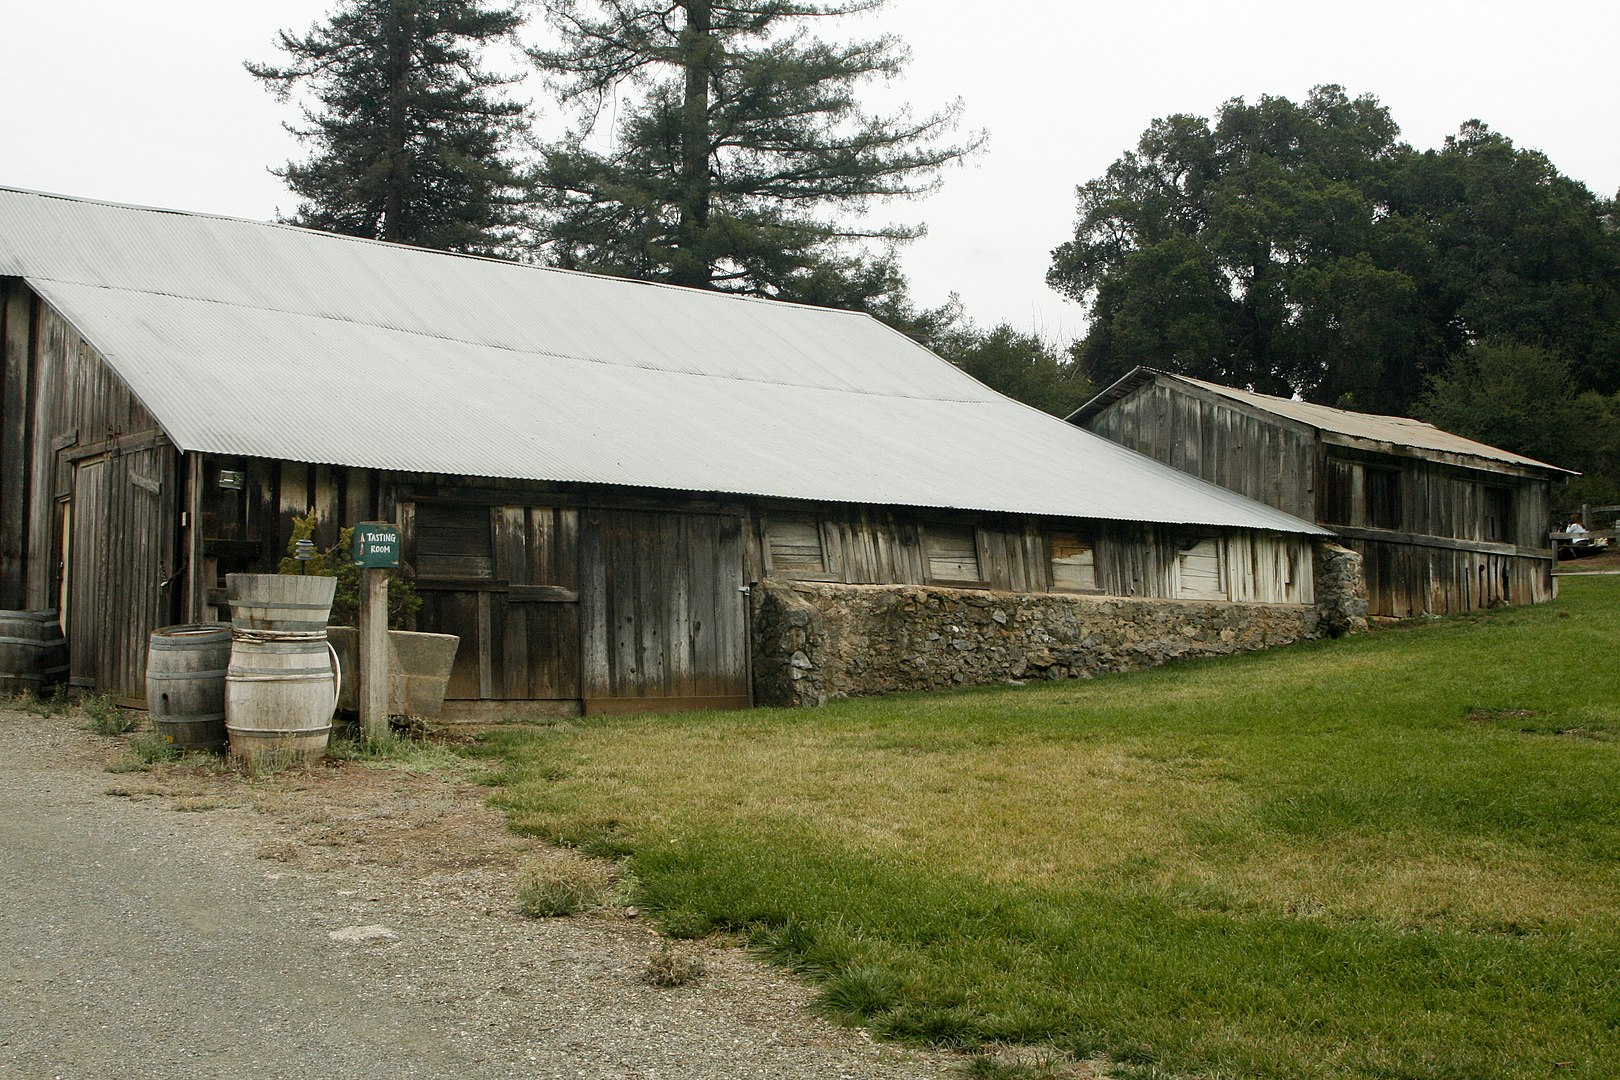 Picchetti Brothers Winery — the wine tasting barn and several historic buildings at Picchetti Ranch, in the Santa Cruz Mountains, Santa Clara County, California.